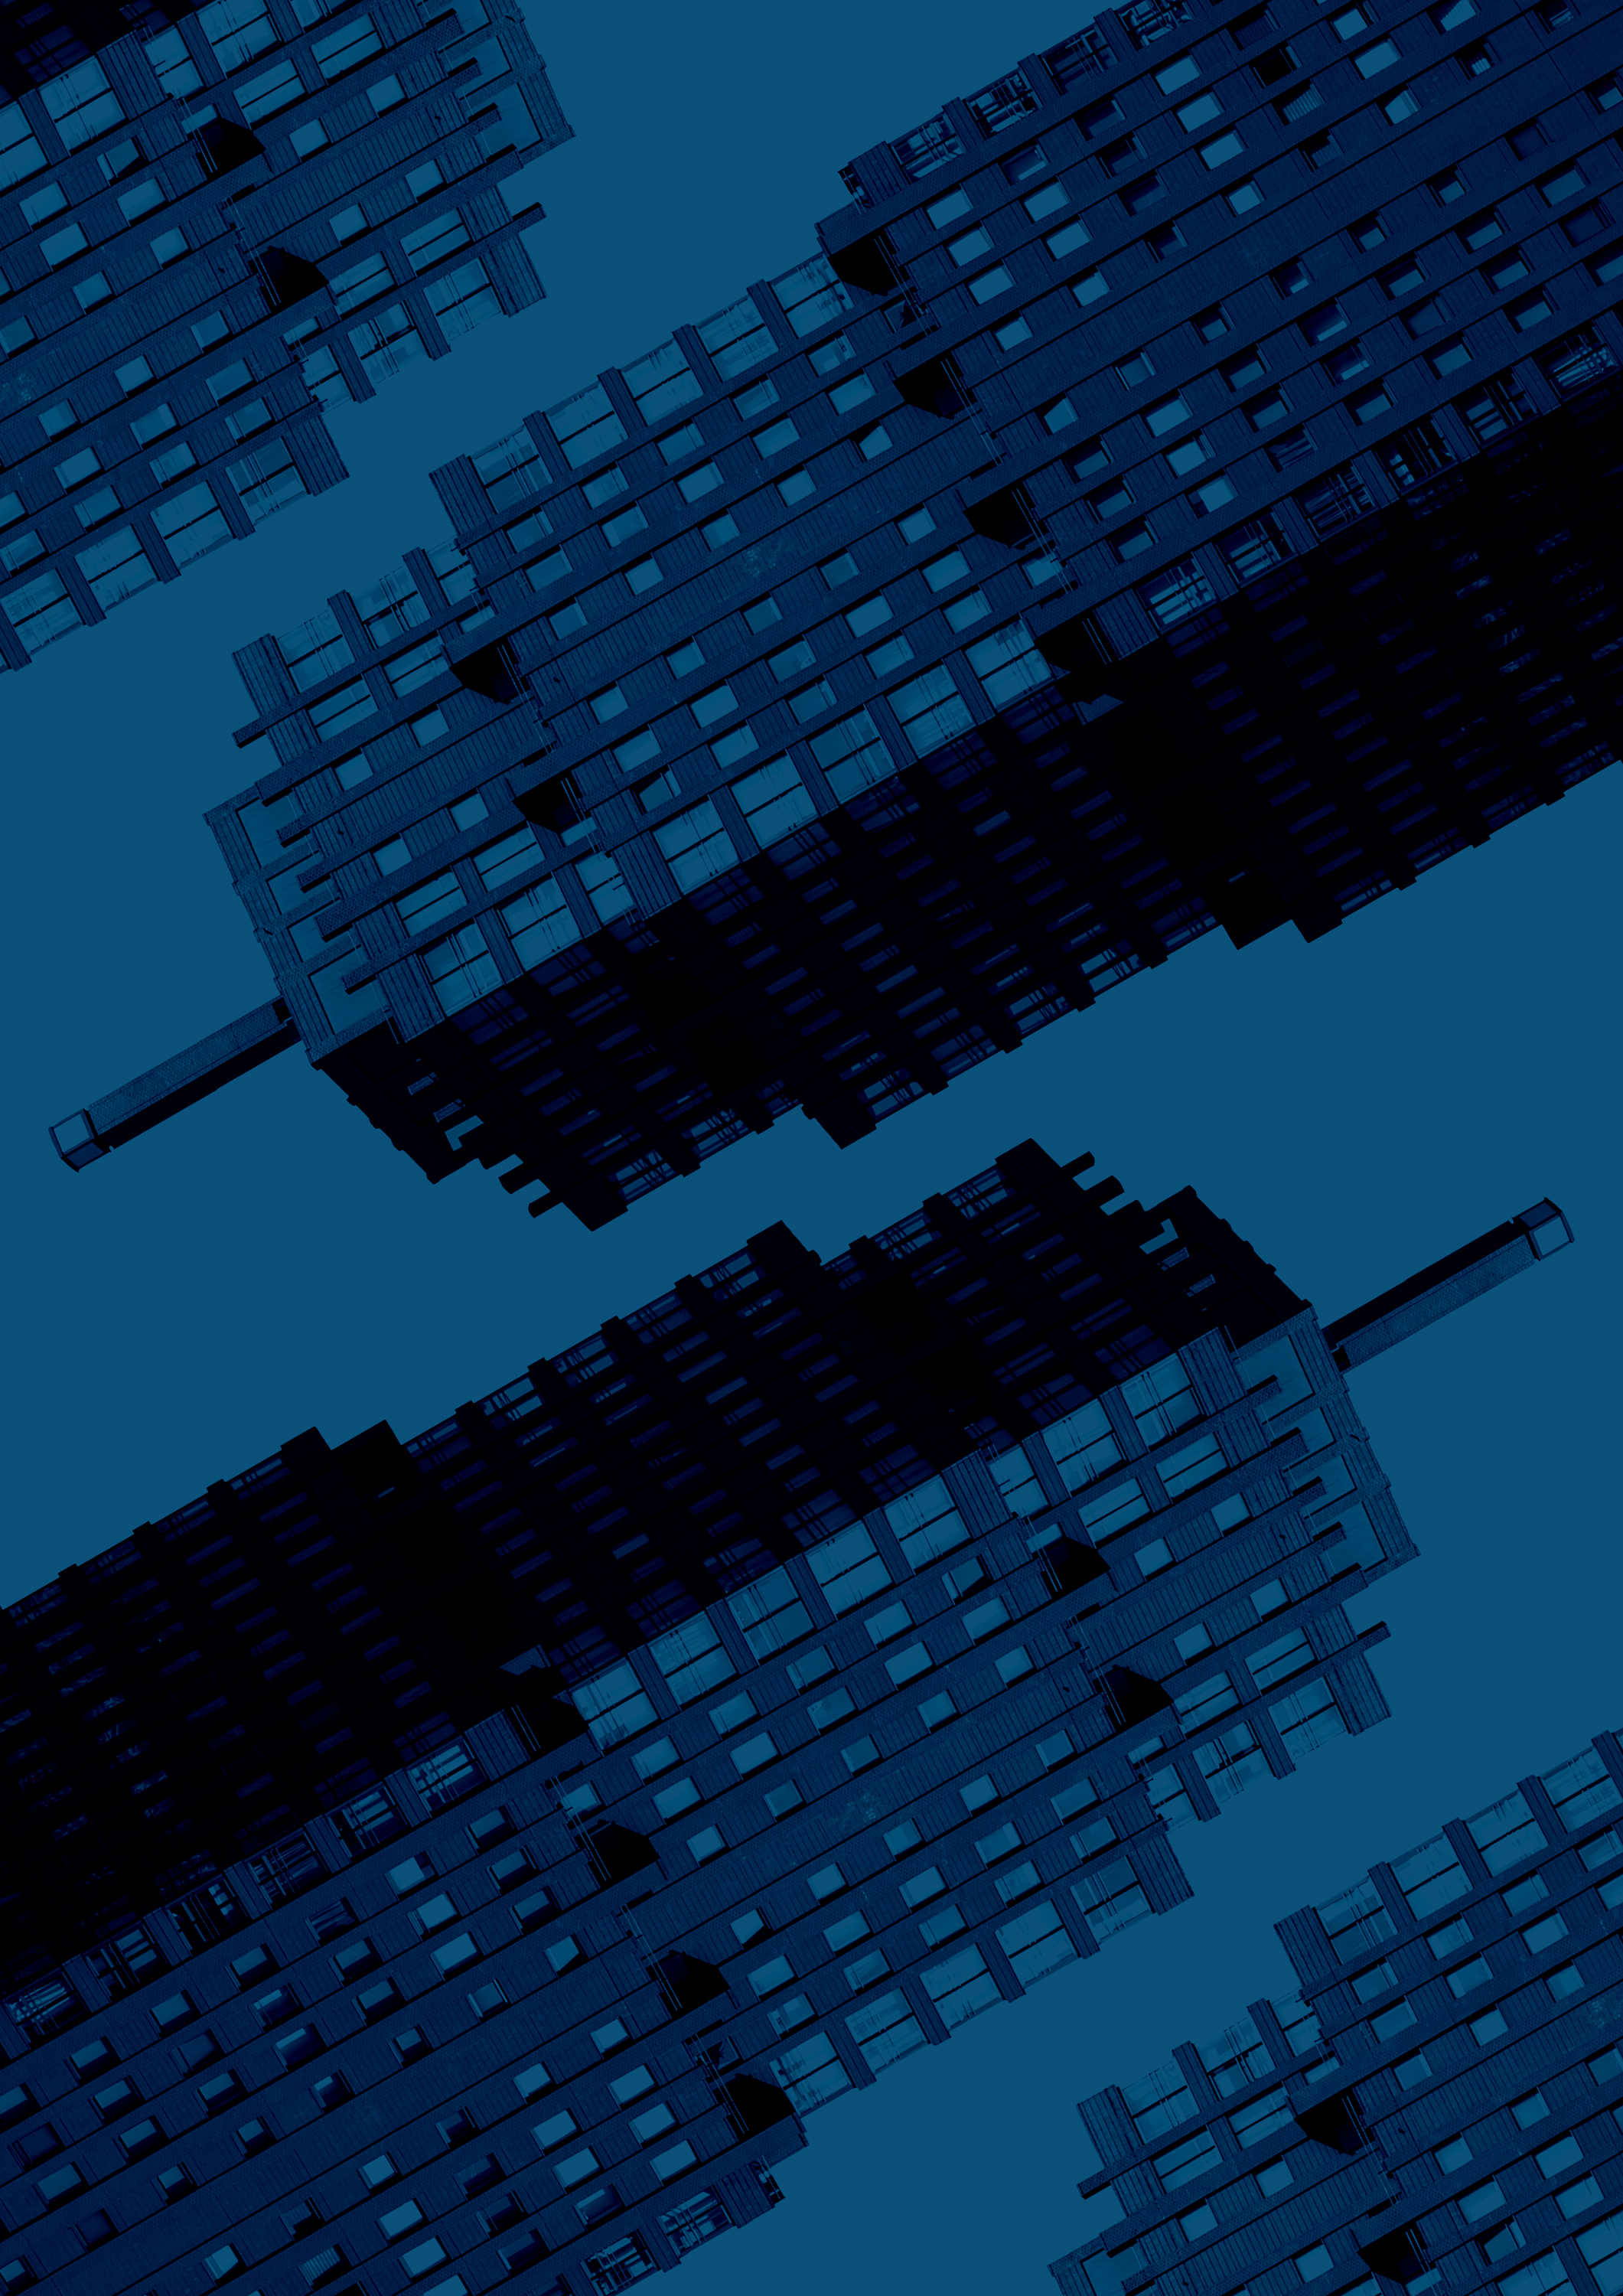 Duotone highrises in blue and angled to create a pattern for the Valens Investors page